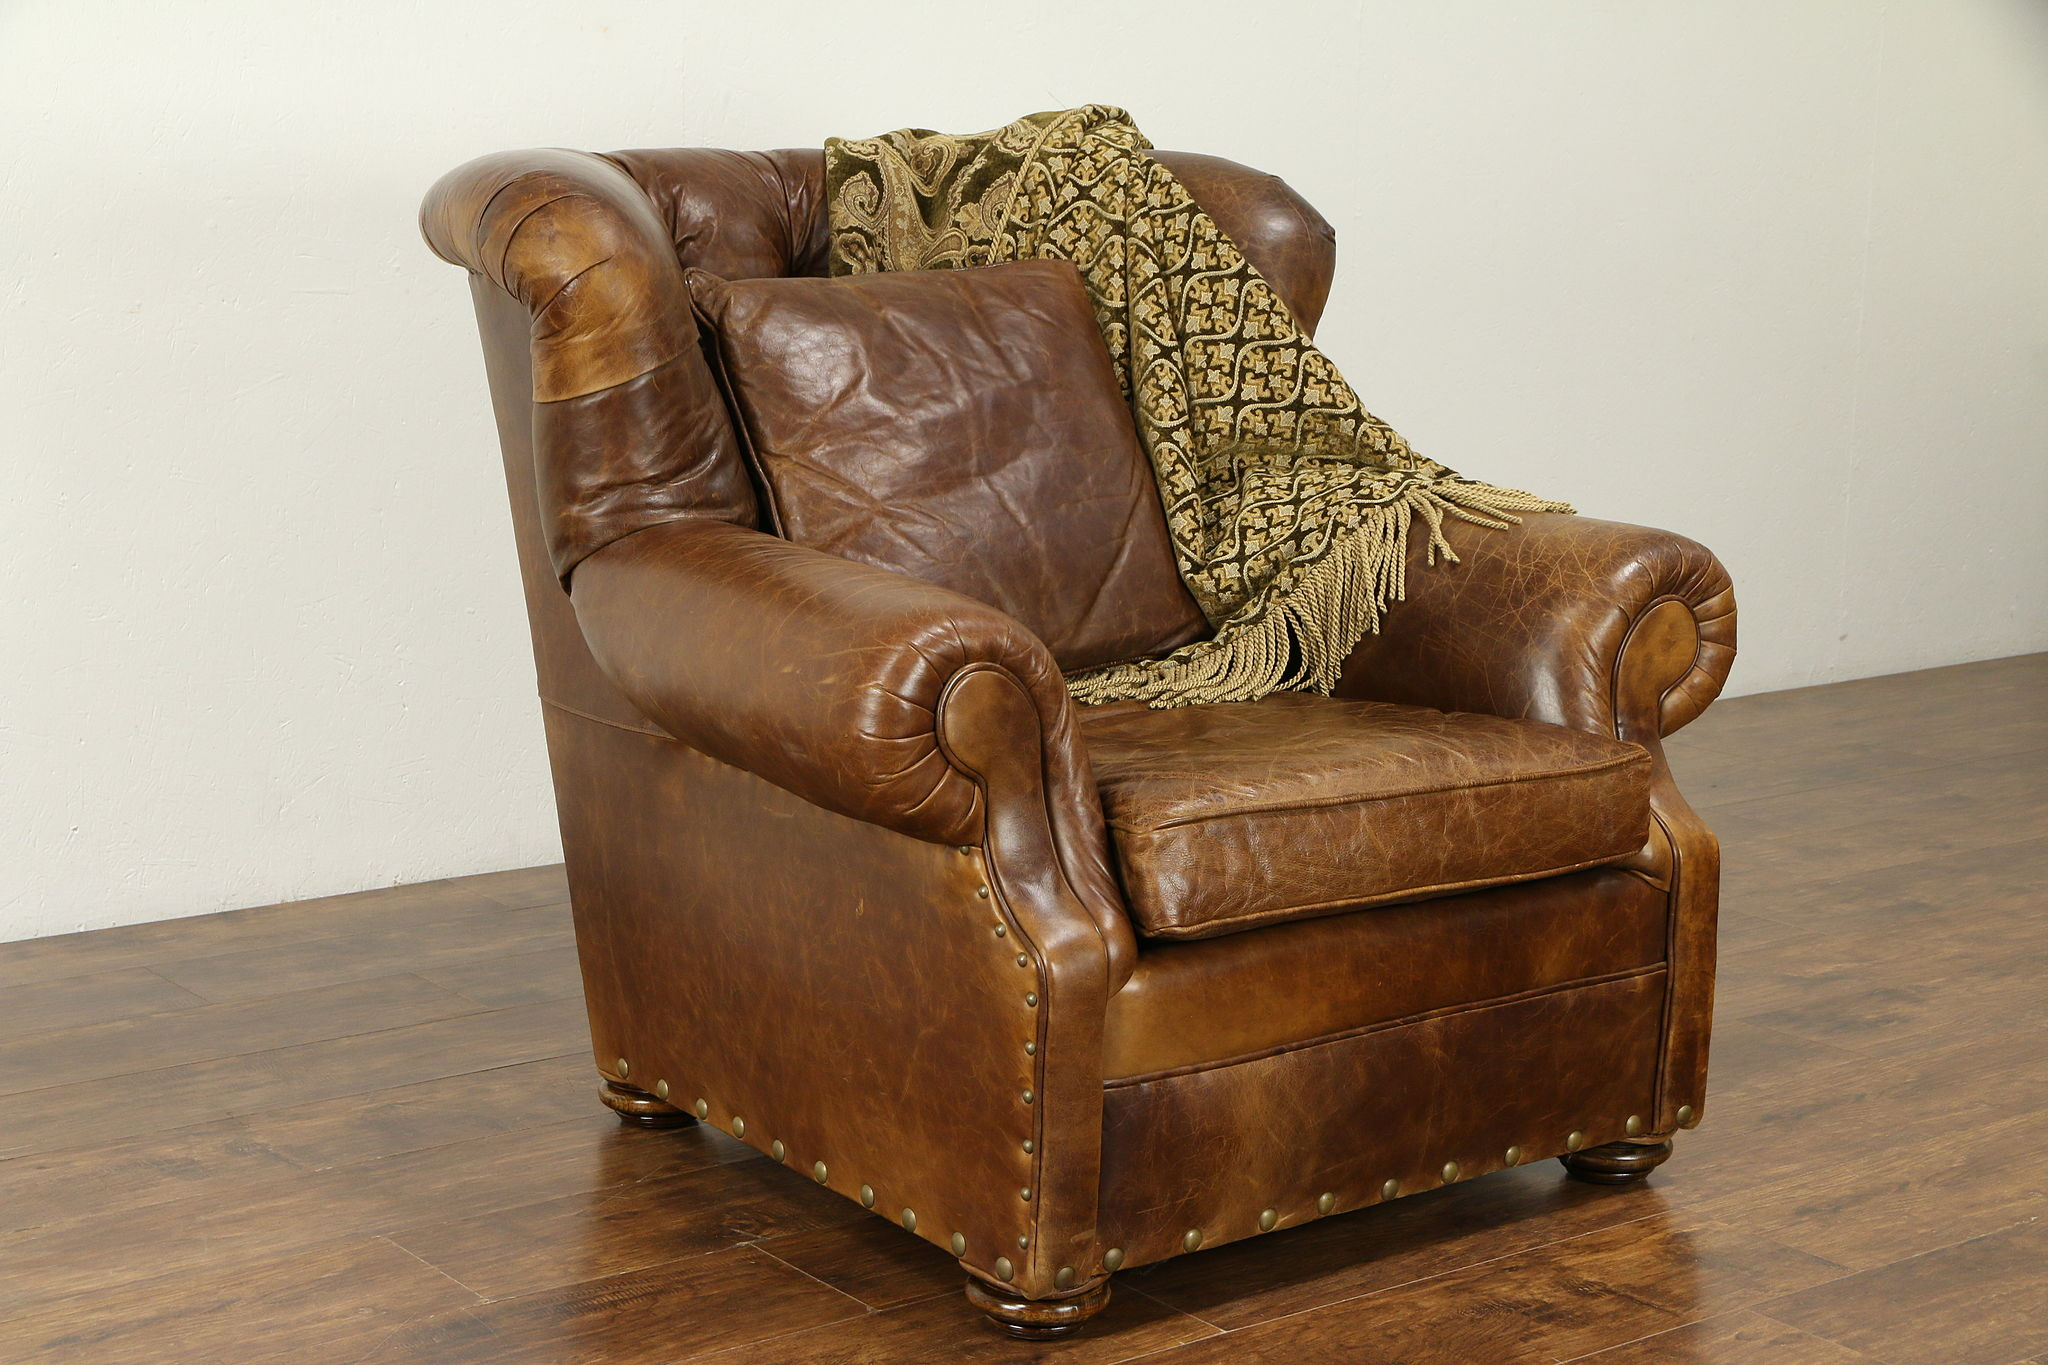 Wingback Tufted Chair Leather Wing Back Large Tufted Chair Pillow Signed Mitchell Gold 30960